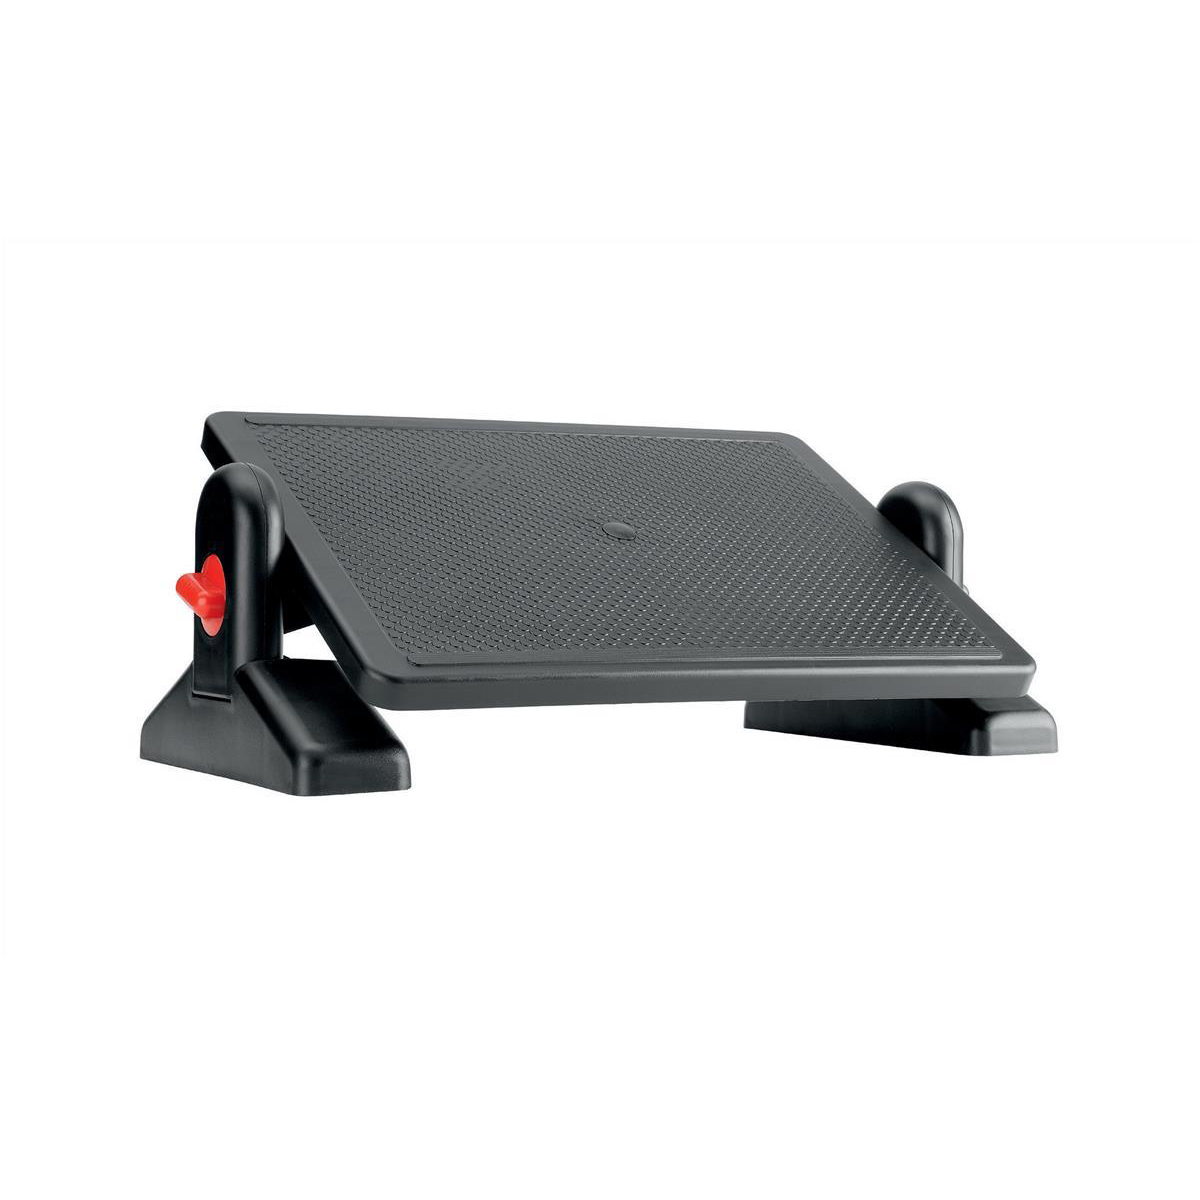 Foot rests Office Footrest ABS Plastic Easy Tilt H115-145mm Platform 415x305mm Ref FR002